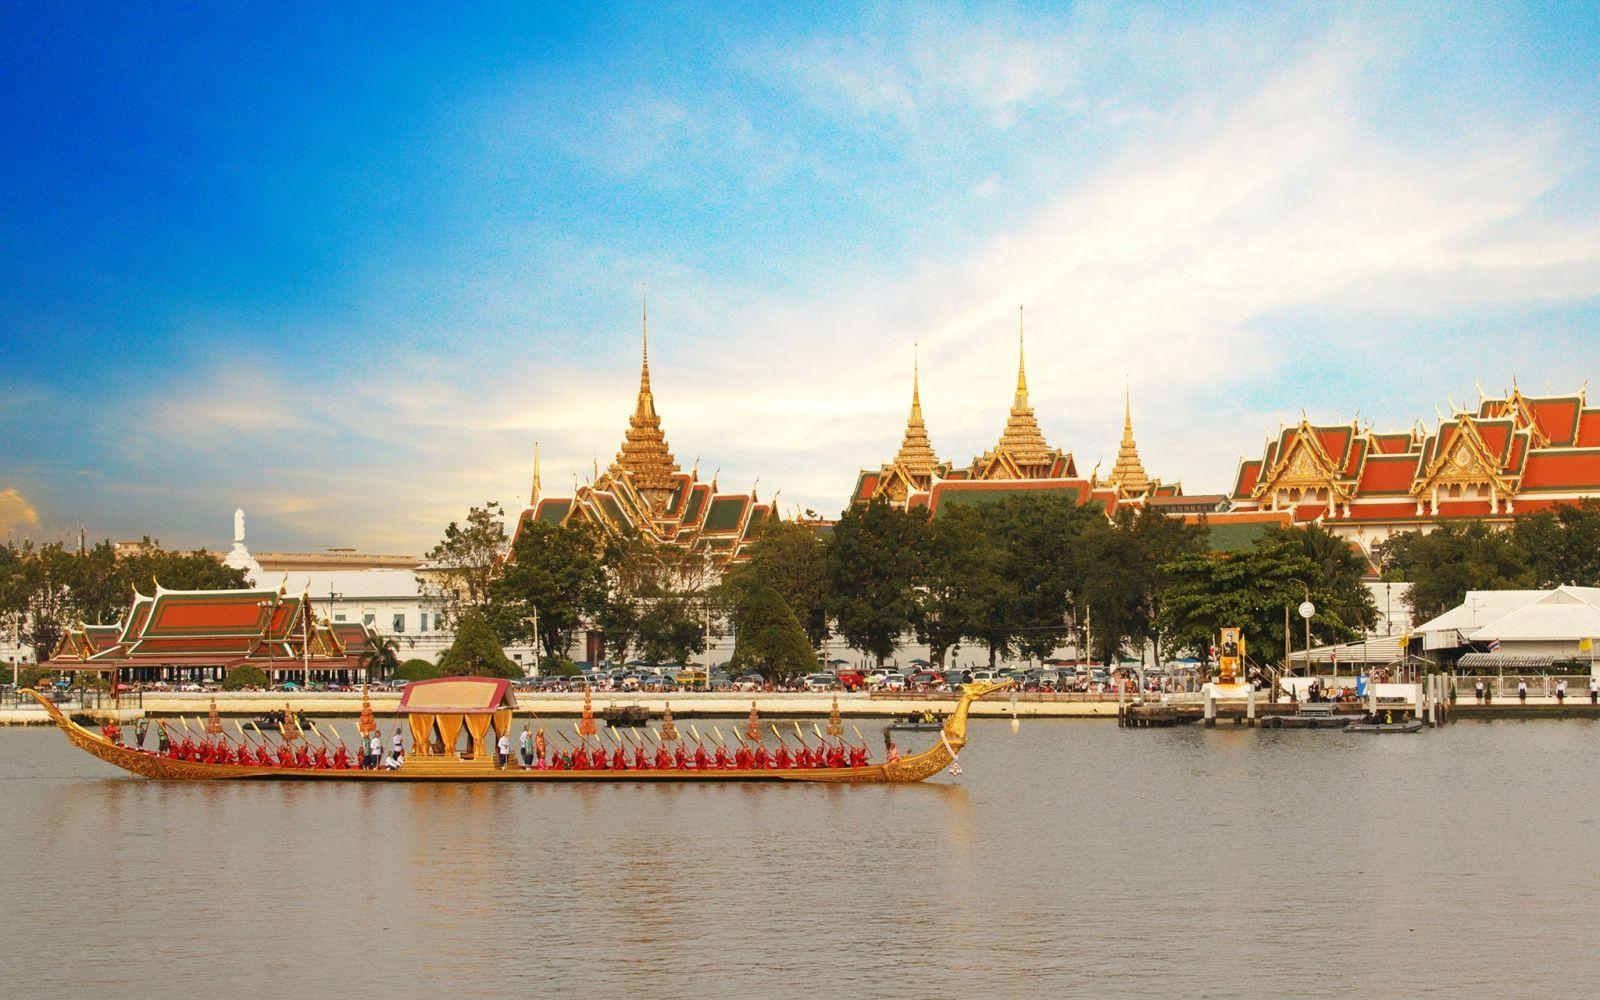 Bangkok, Thailand's capital, is a large city known for ornate ...